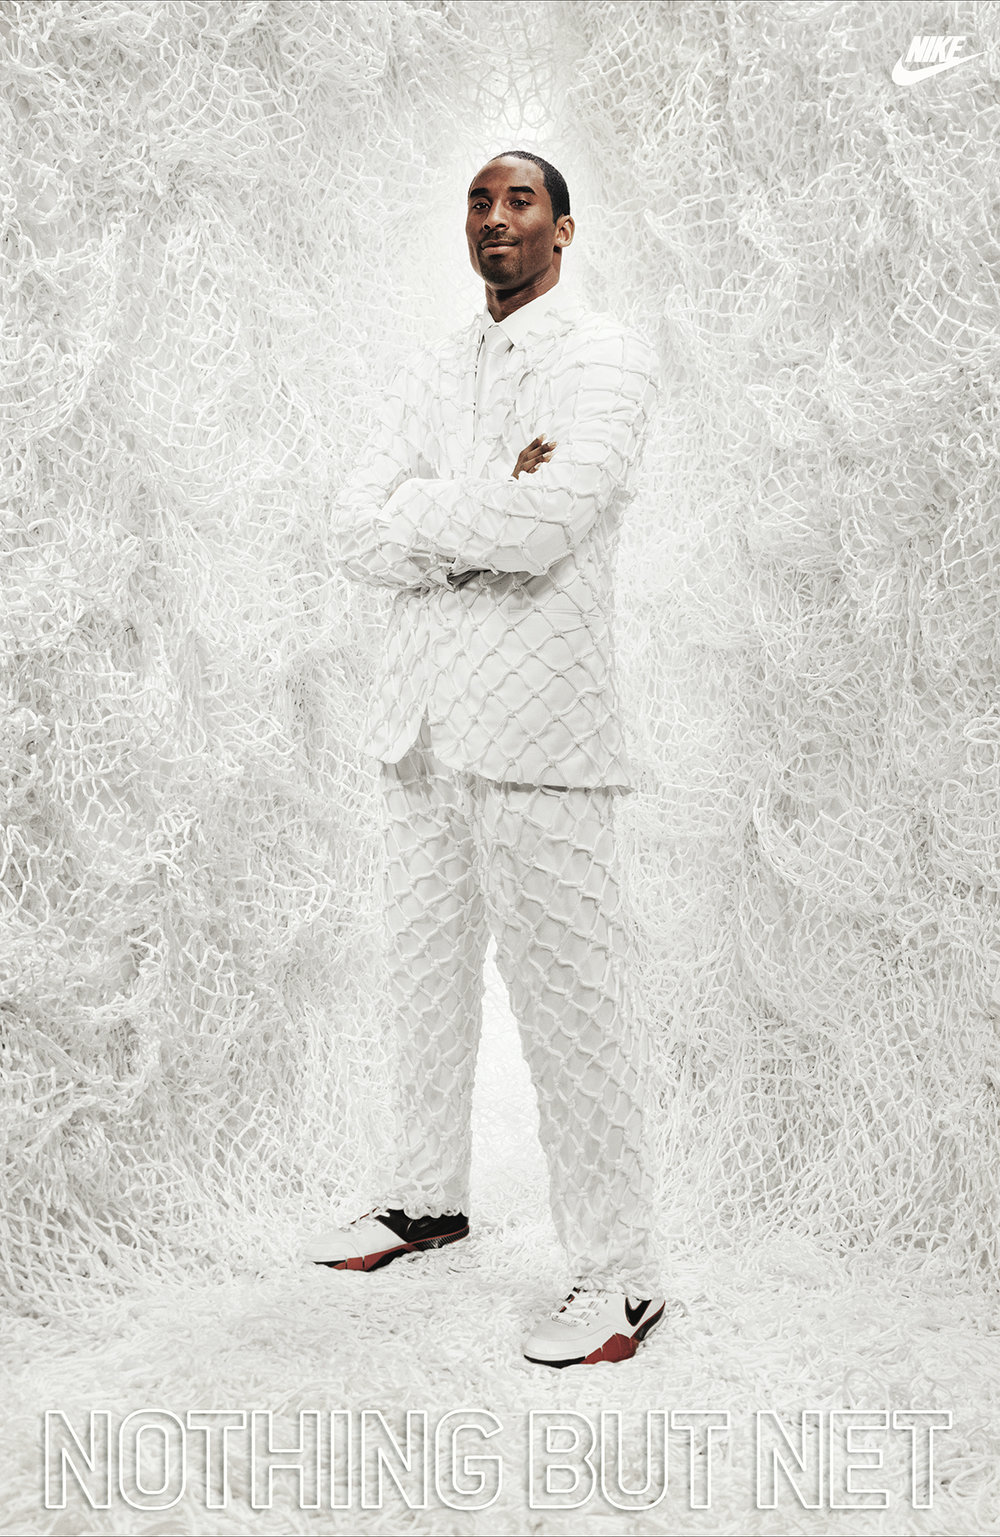 Kobe Bryant for Nike - Weiden & Kennedy - Los Angeles, CA